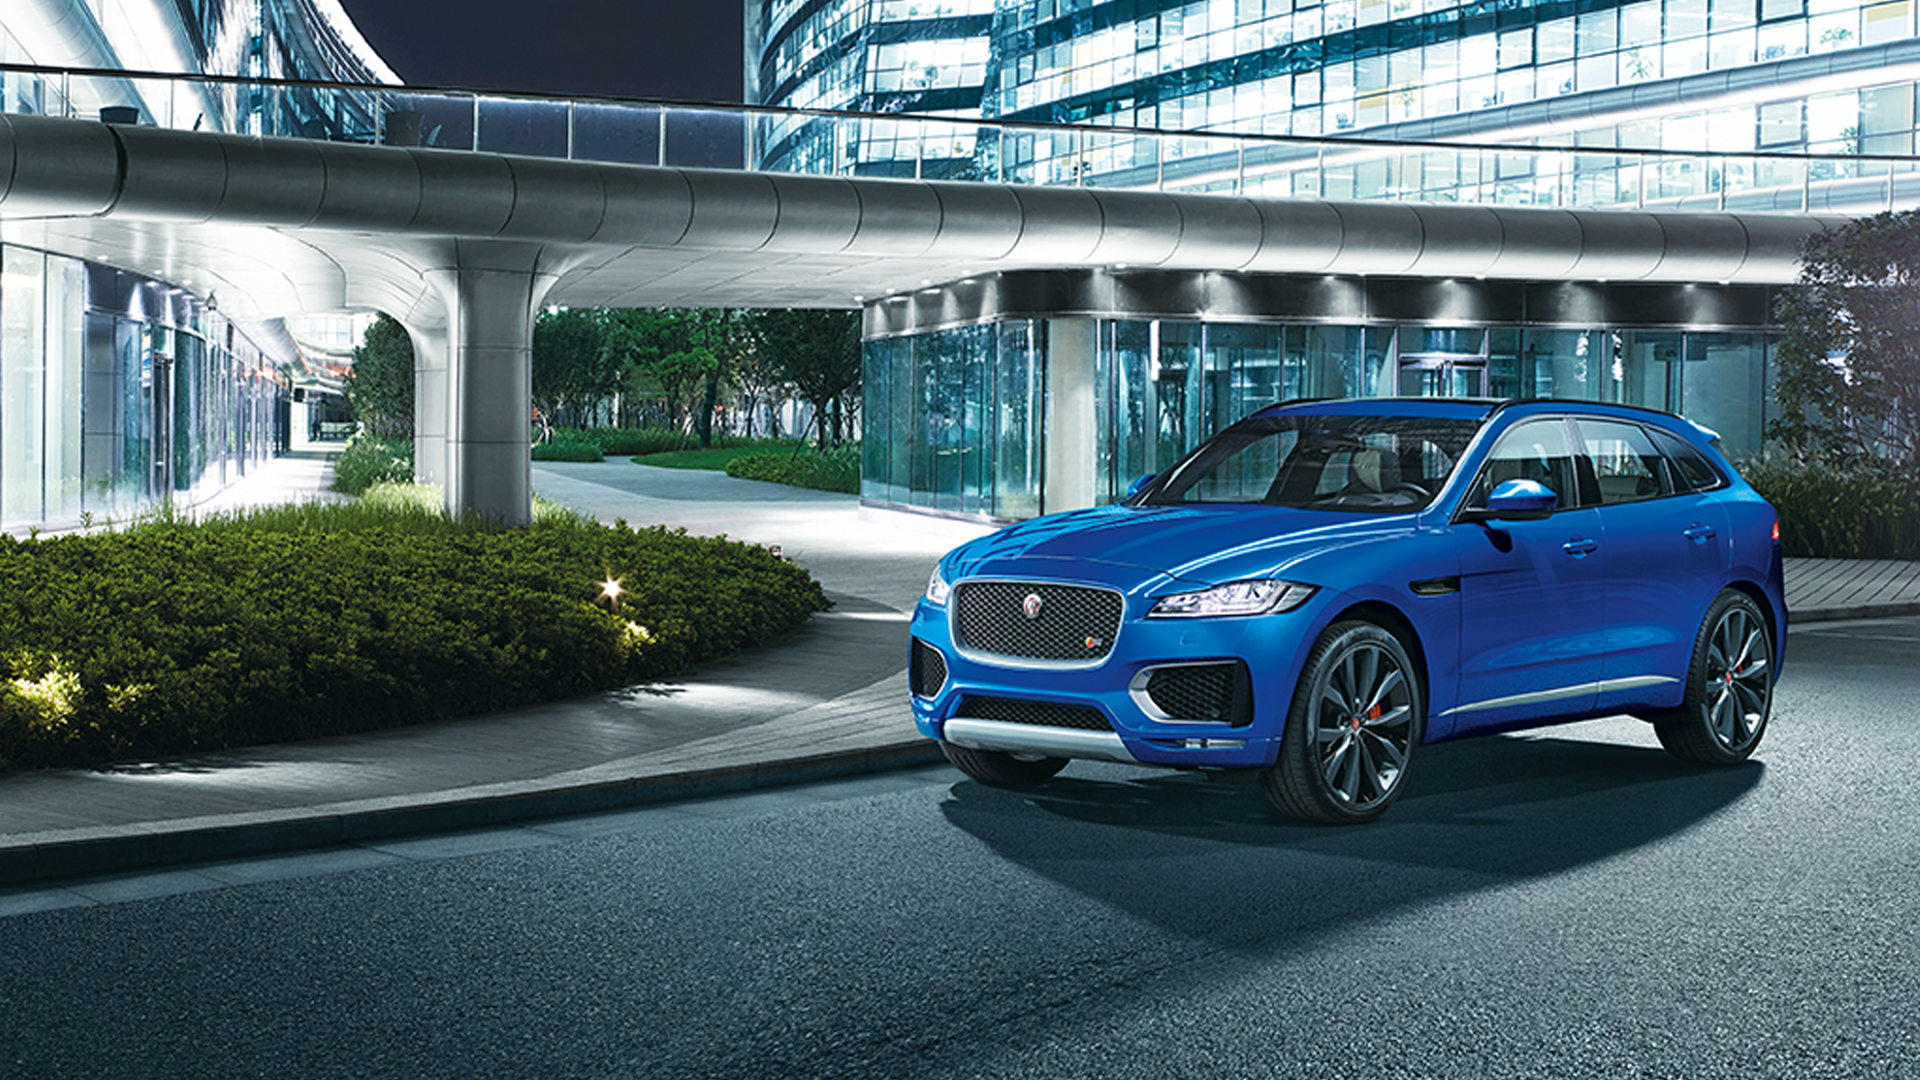 Jaguar F Pace 2016 First Edition Price Mileage Reviews